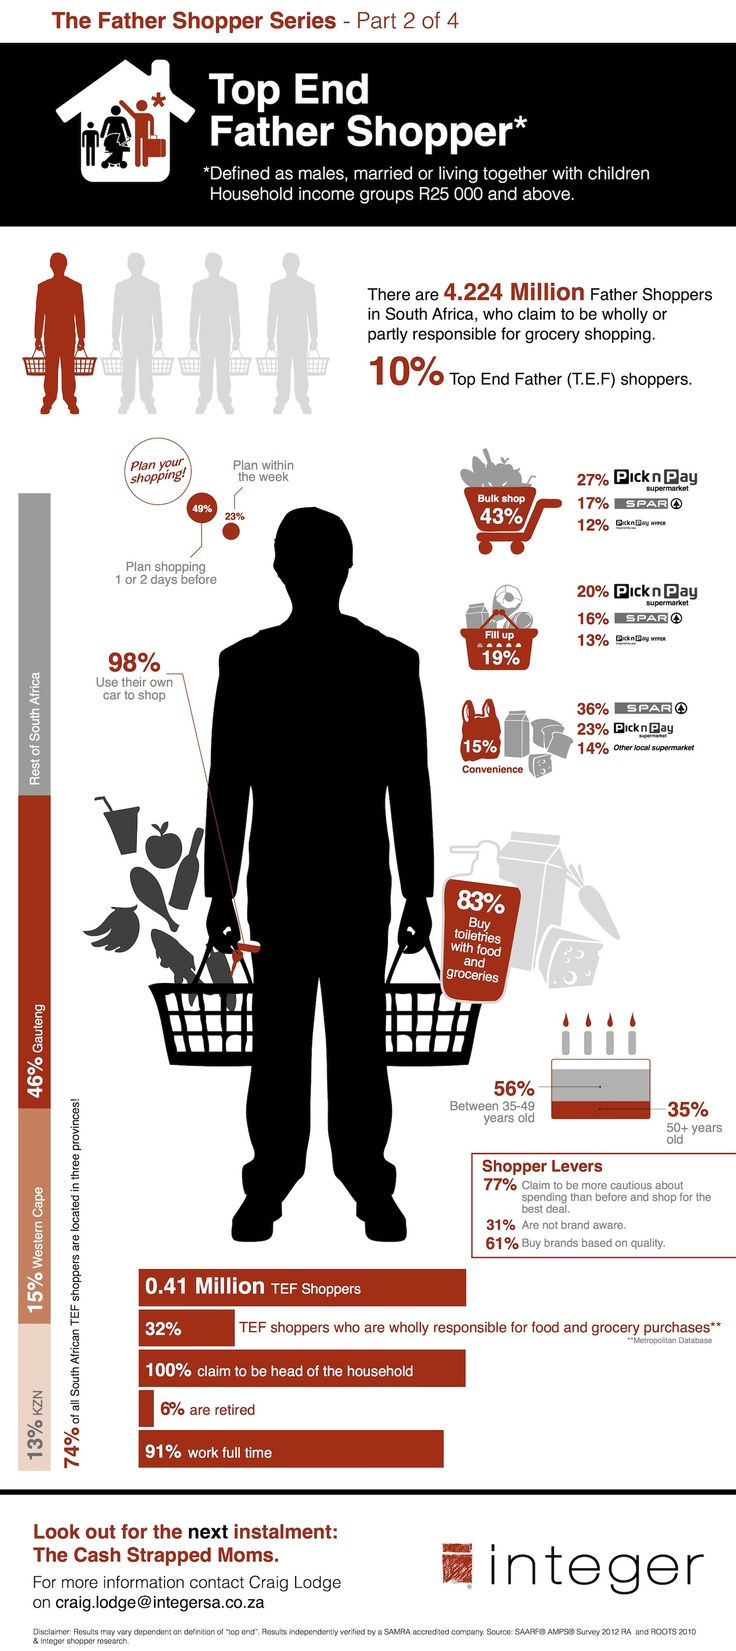 Top End Father Shopper Infographic - South Africa